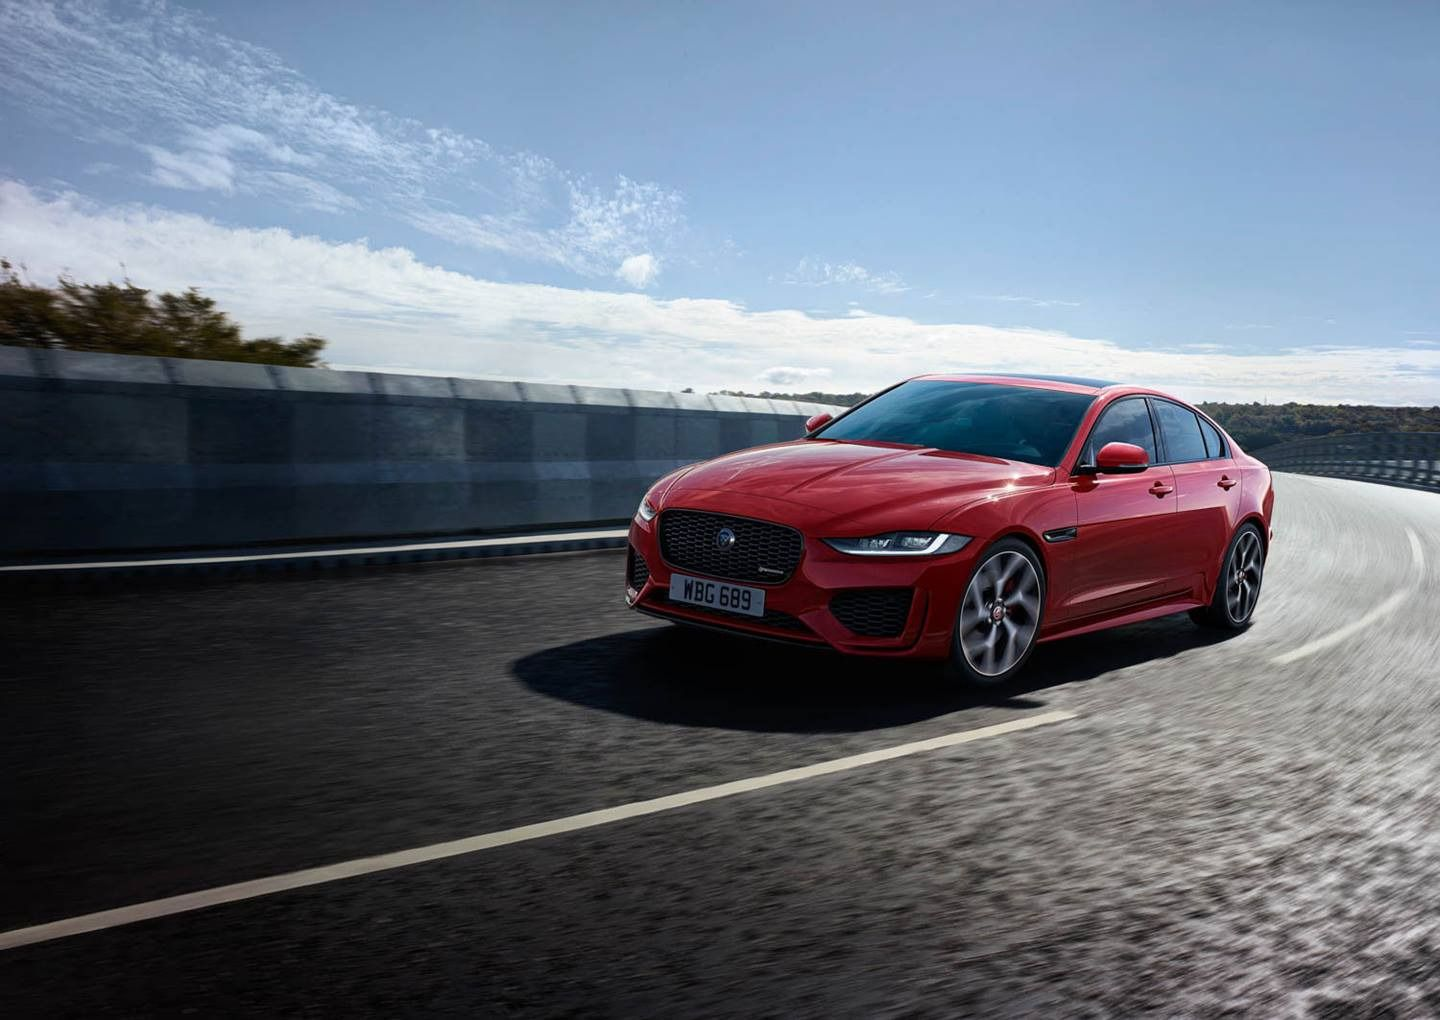 2020 Jaguar XF Sportbrake And Redesign Jaguar xe, New